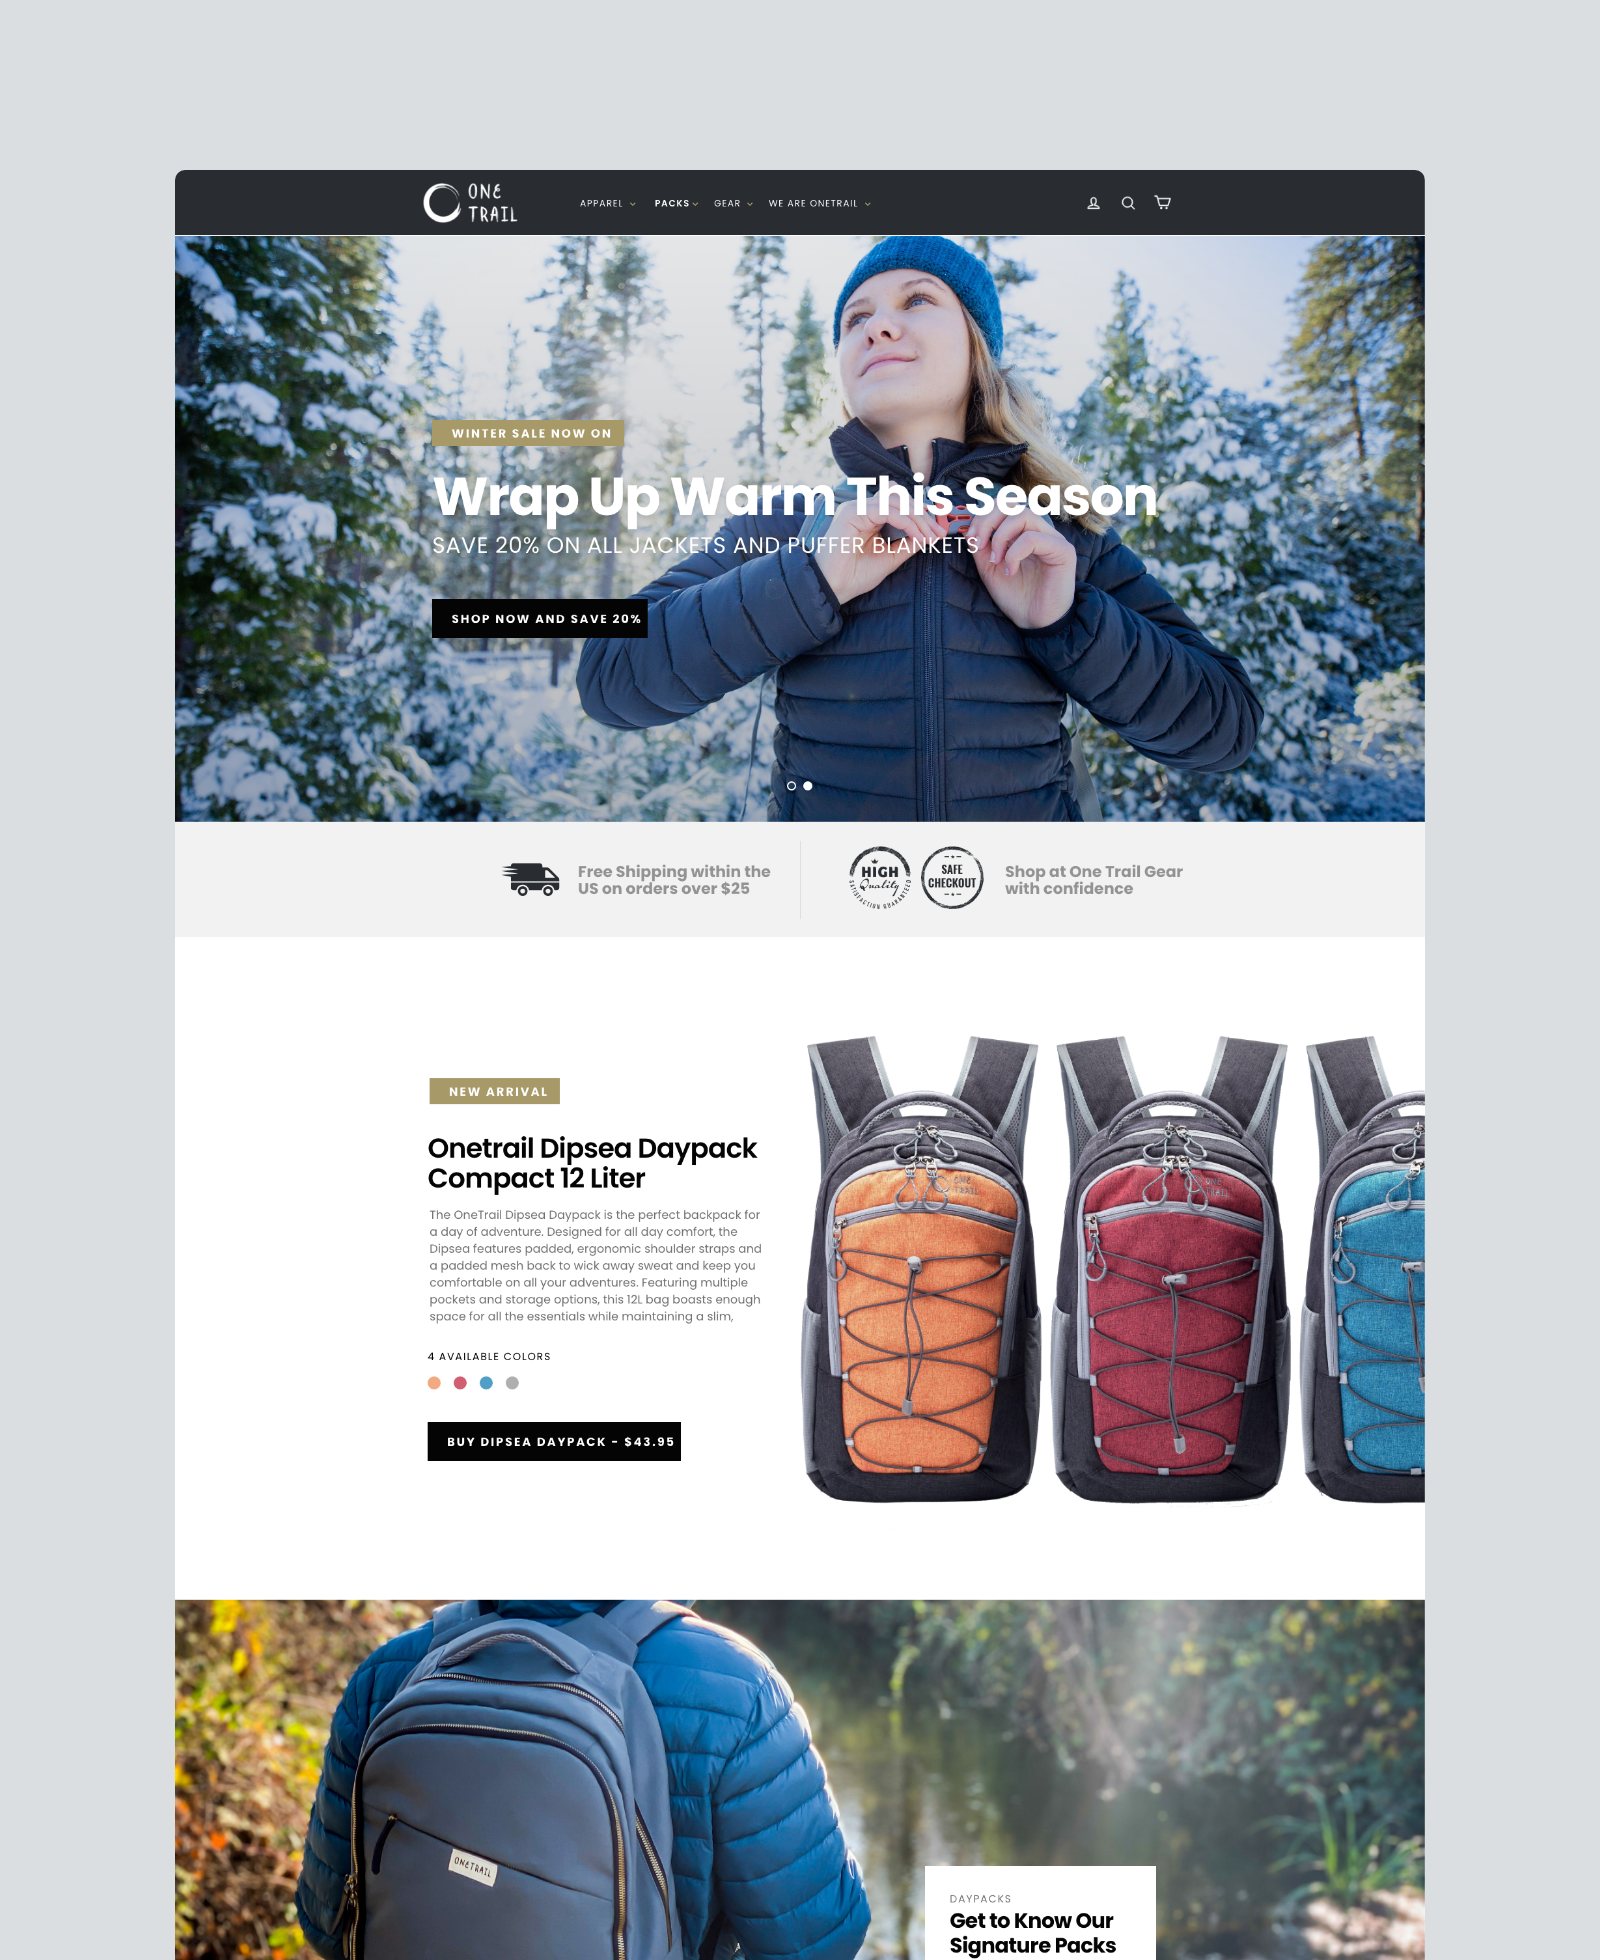 One Trail Gear Home Page